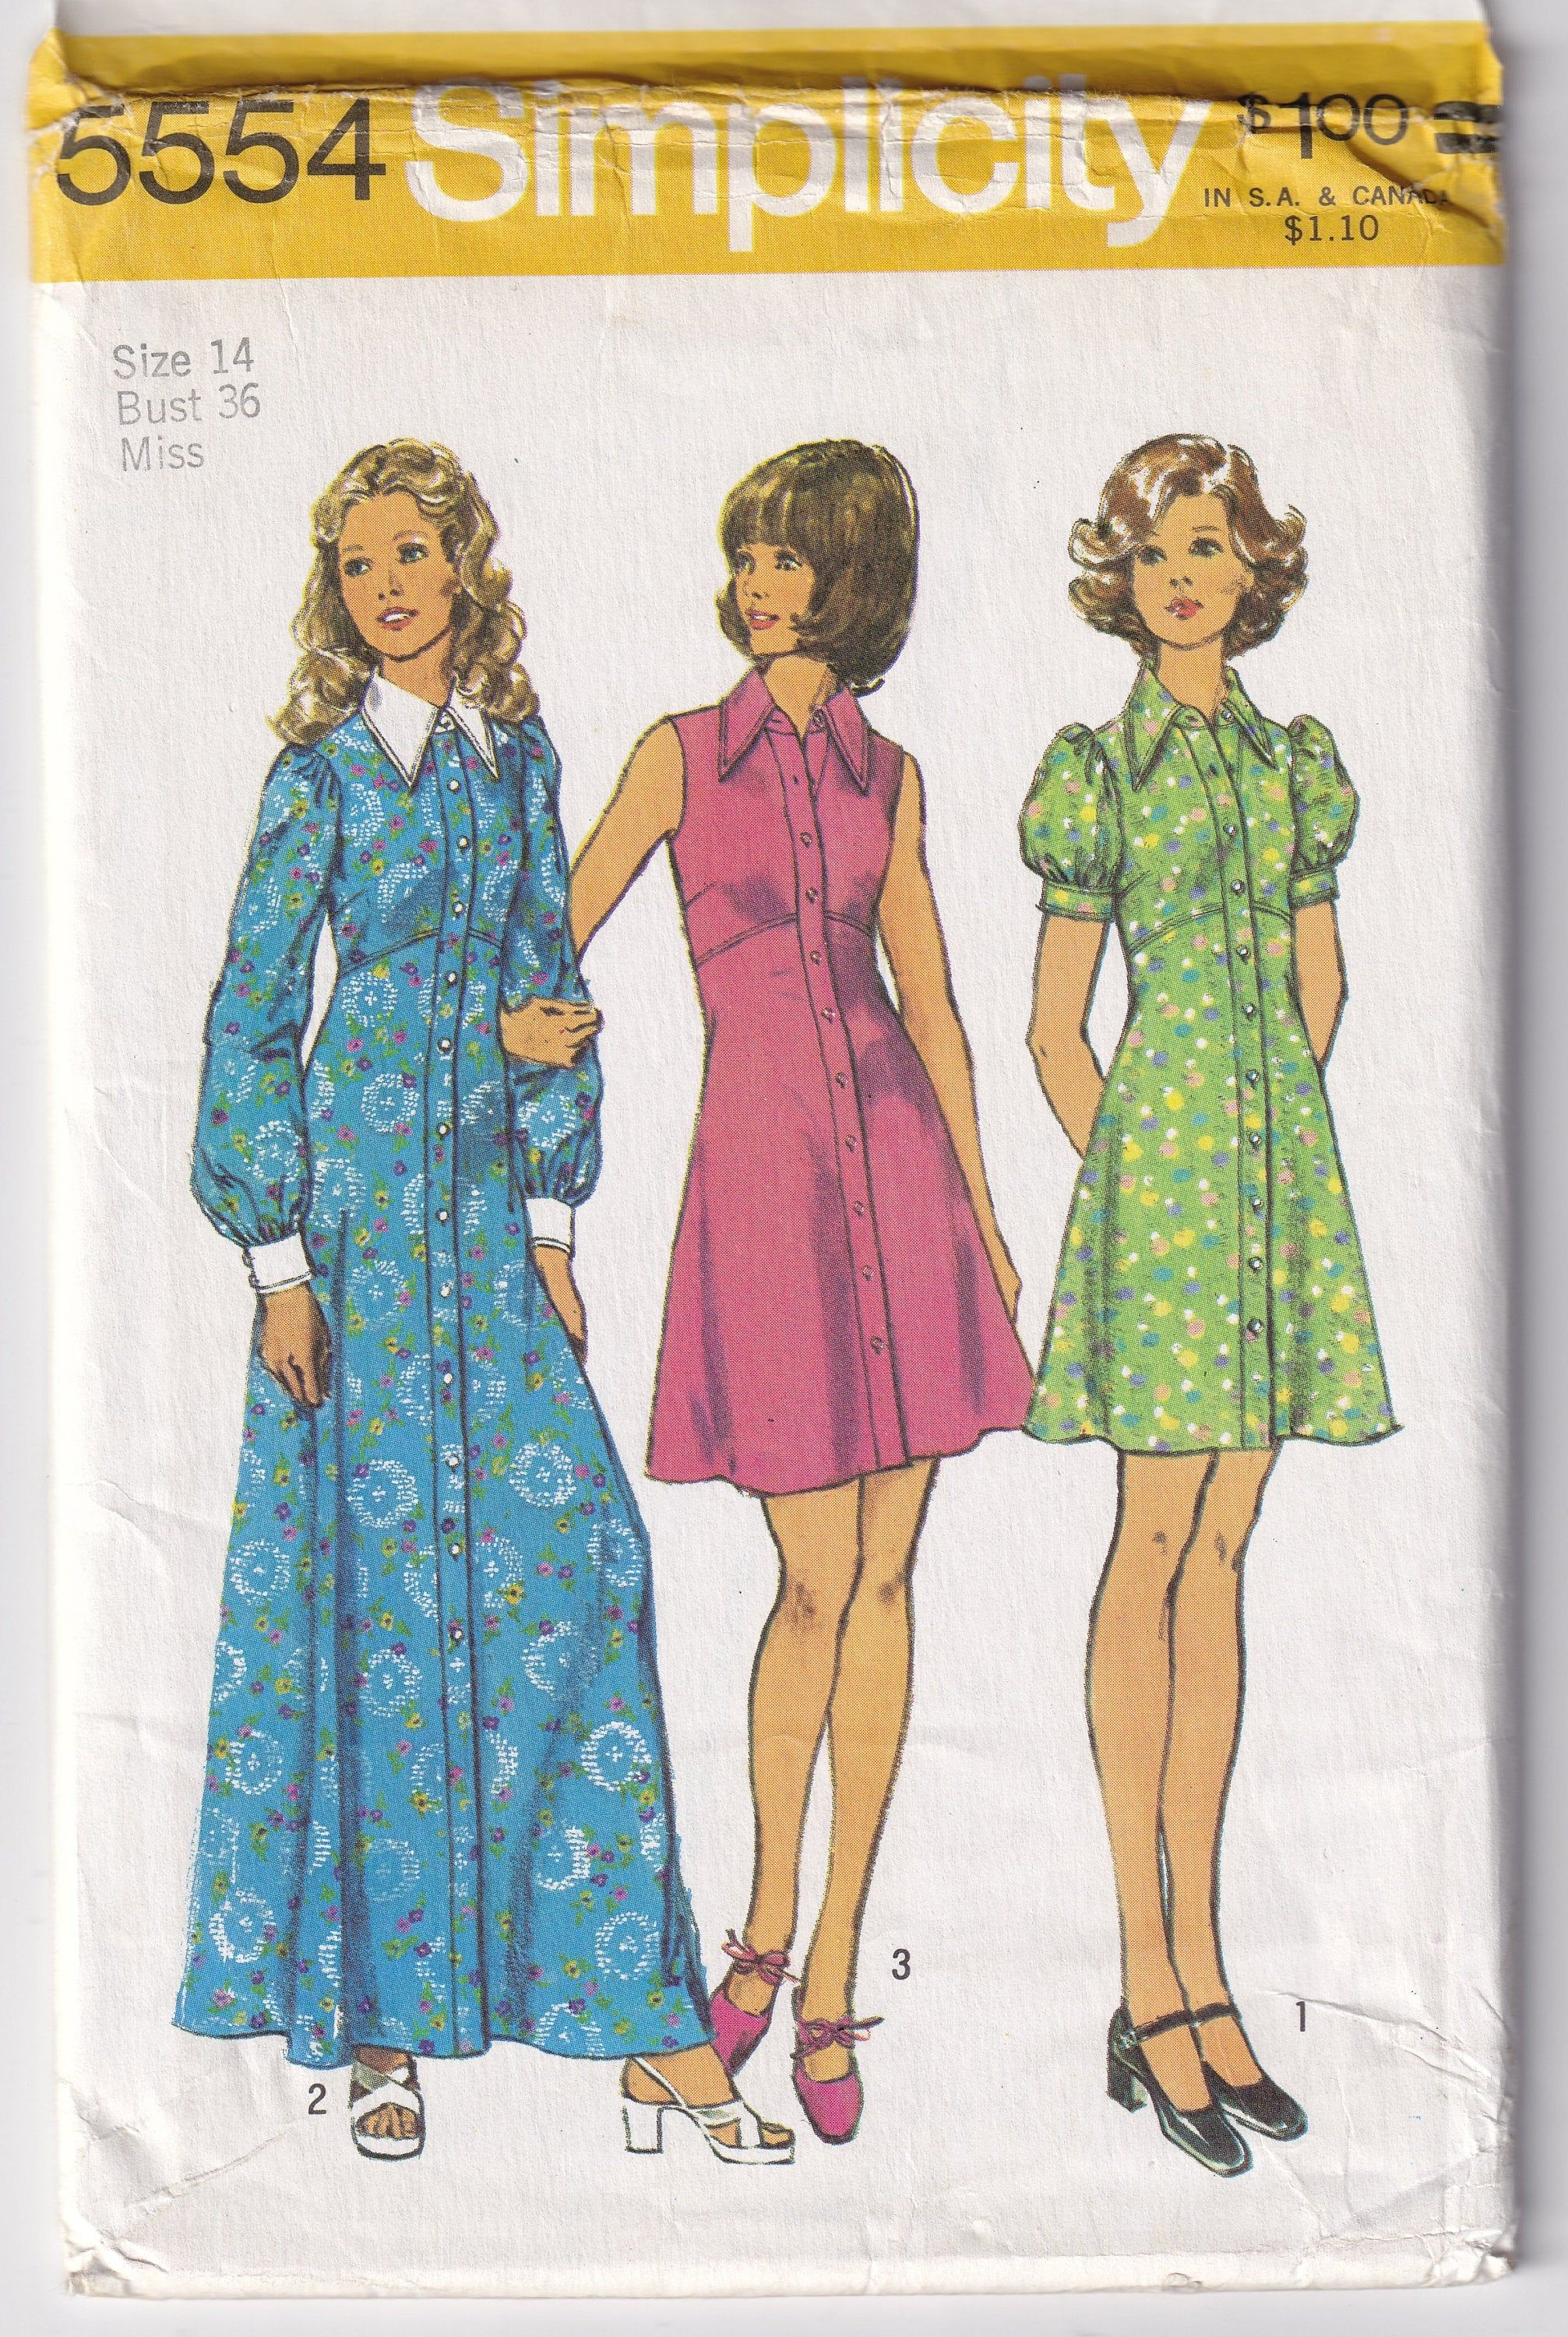 Vintage 1973 Simplicity 5554 Uncut Sewing Pattern Misses Dress In Two Lengths Size 14 Bust 36 By Sewuniqueclassi Sweaters Women Fashion Sewing Dresses Fashion